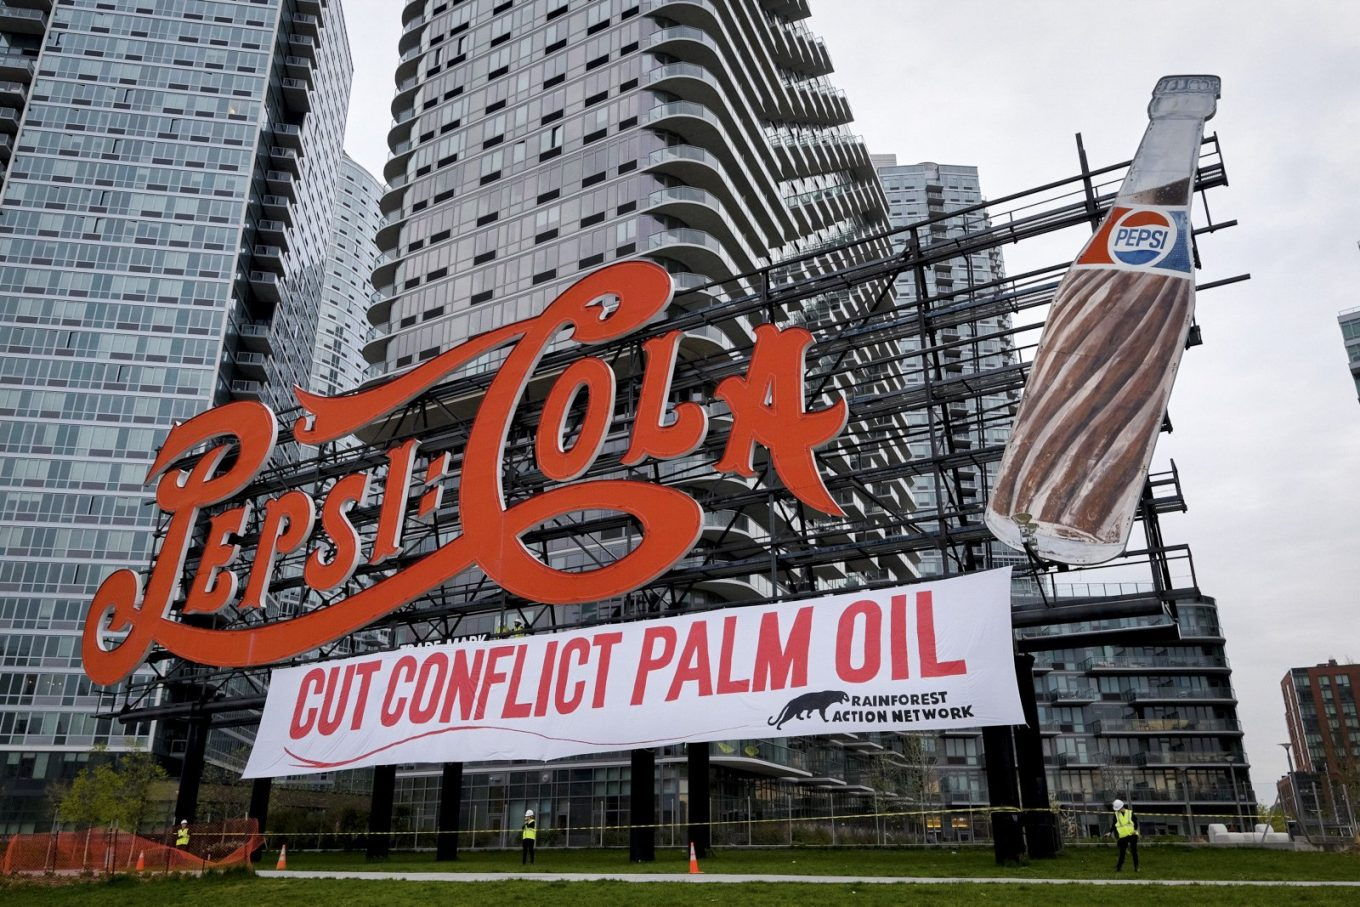 Pepsi cola palm oil - The Age of Change - How the Business World Has Become More Eco-Friendly in the 21st Century